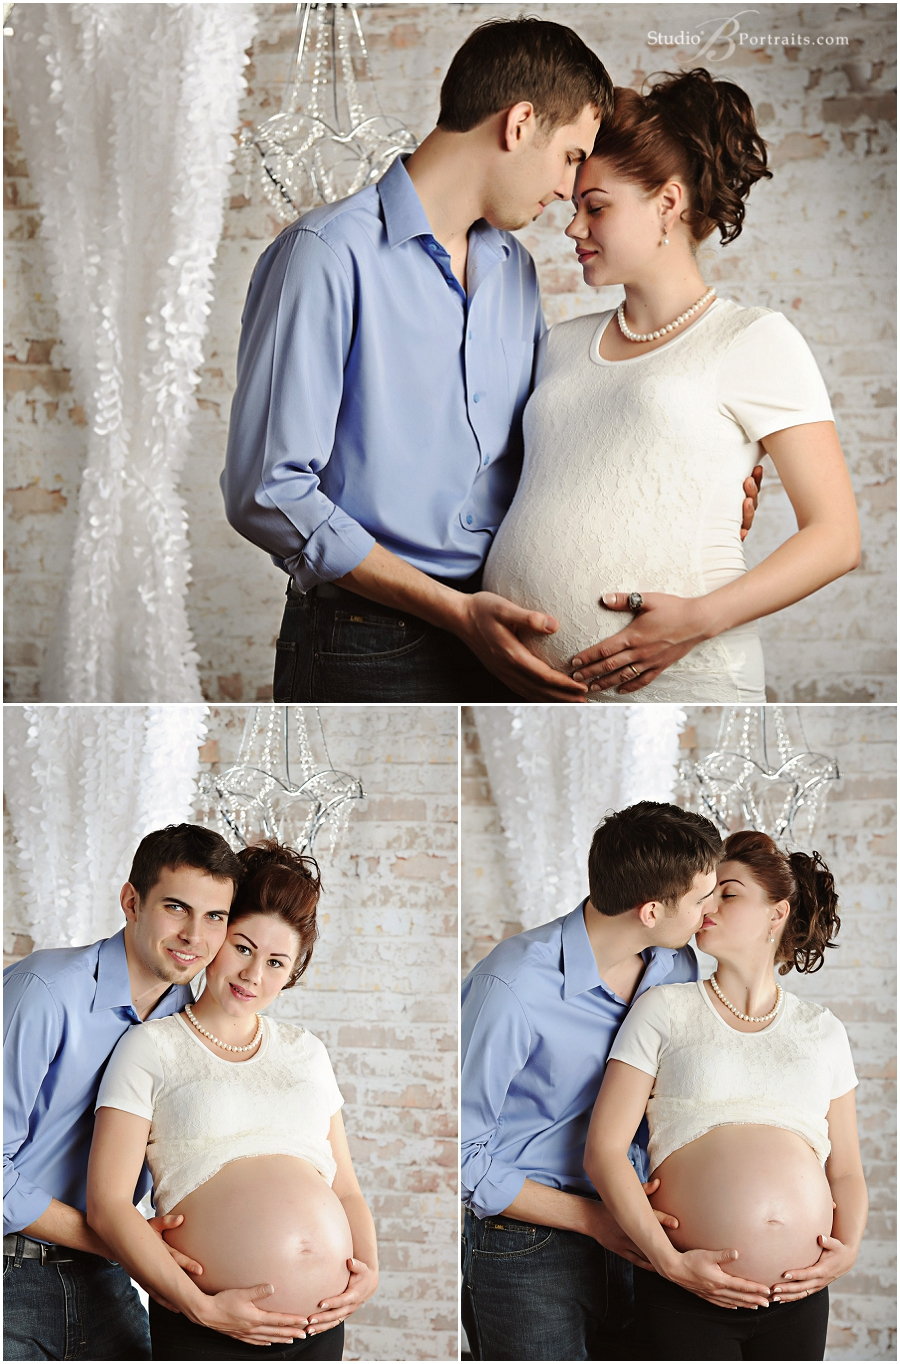 Maternity Photo Studio Near Me